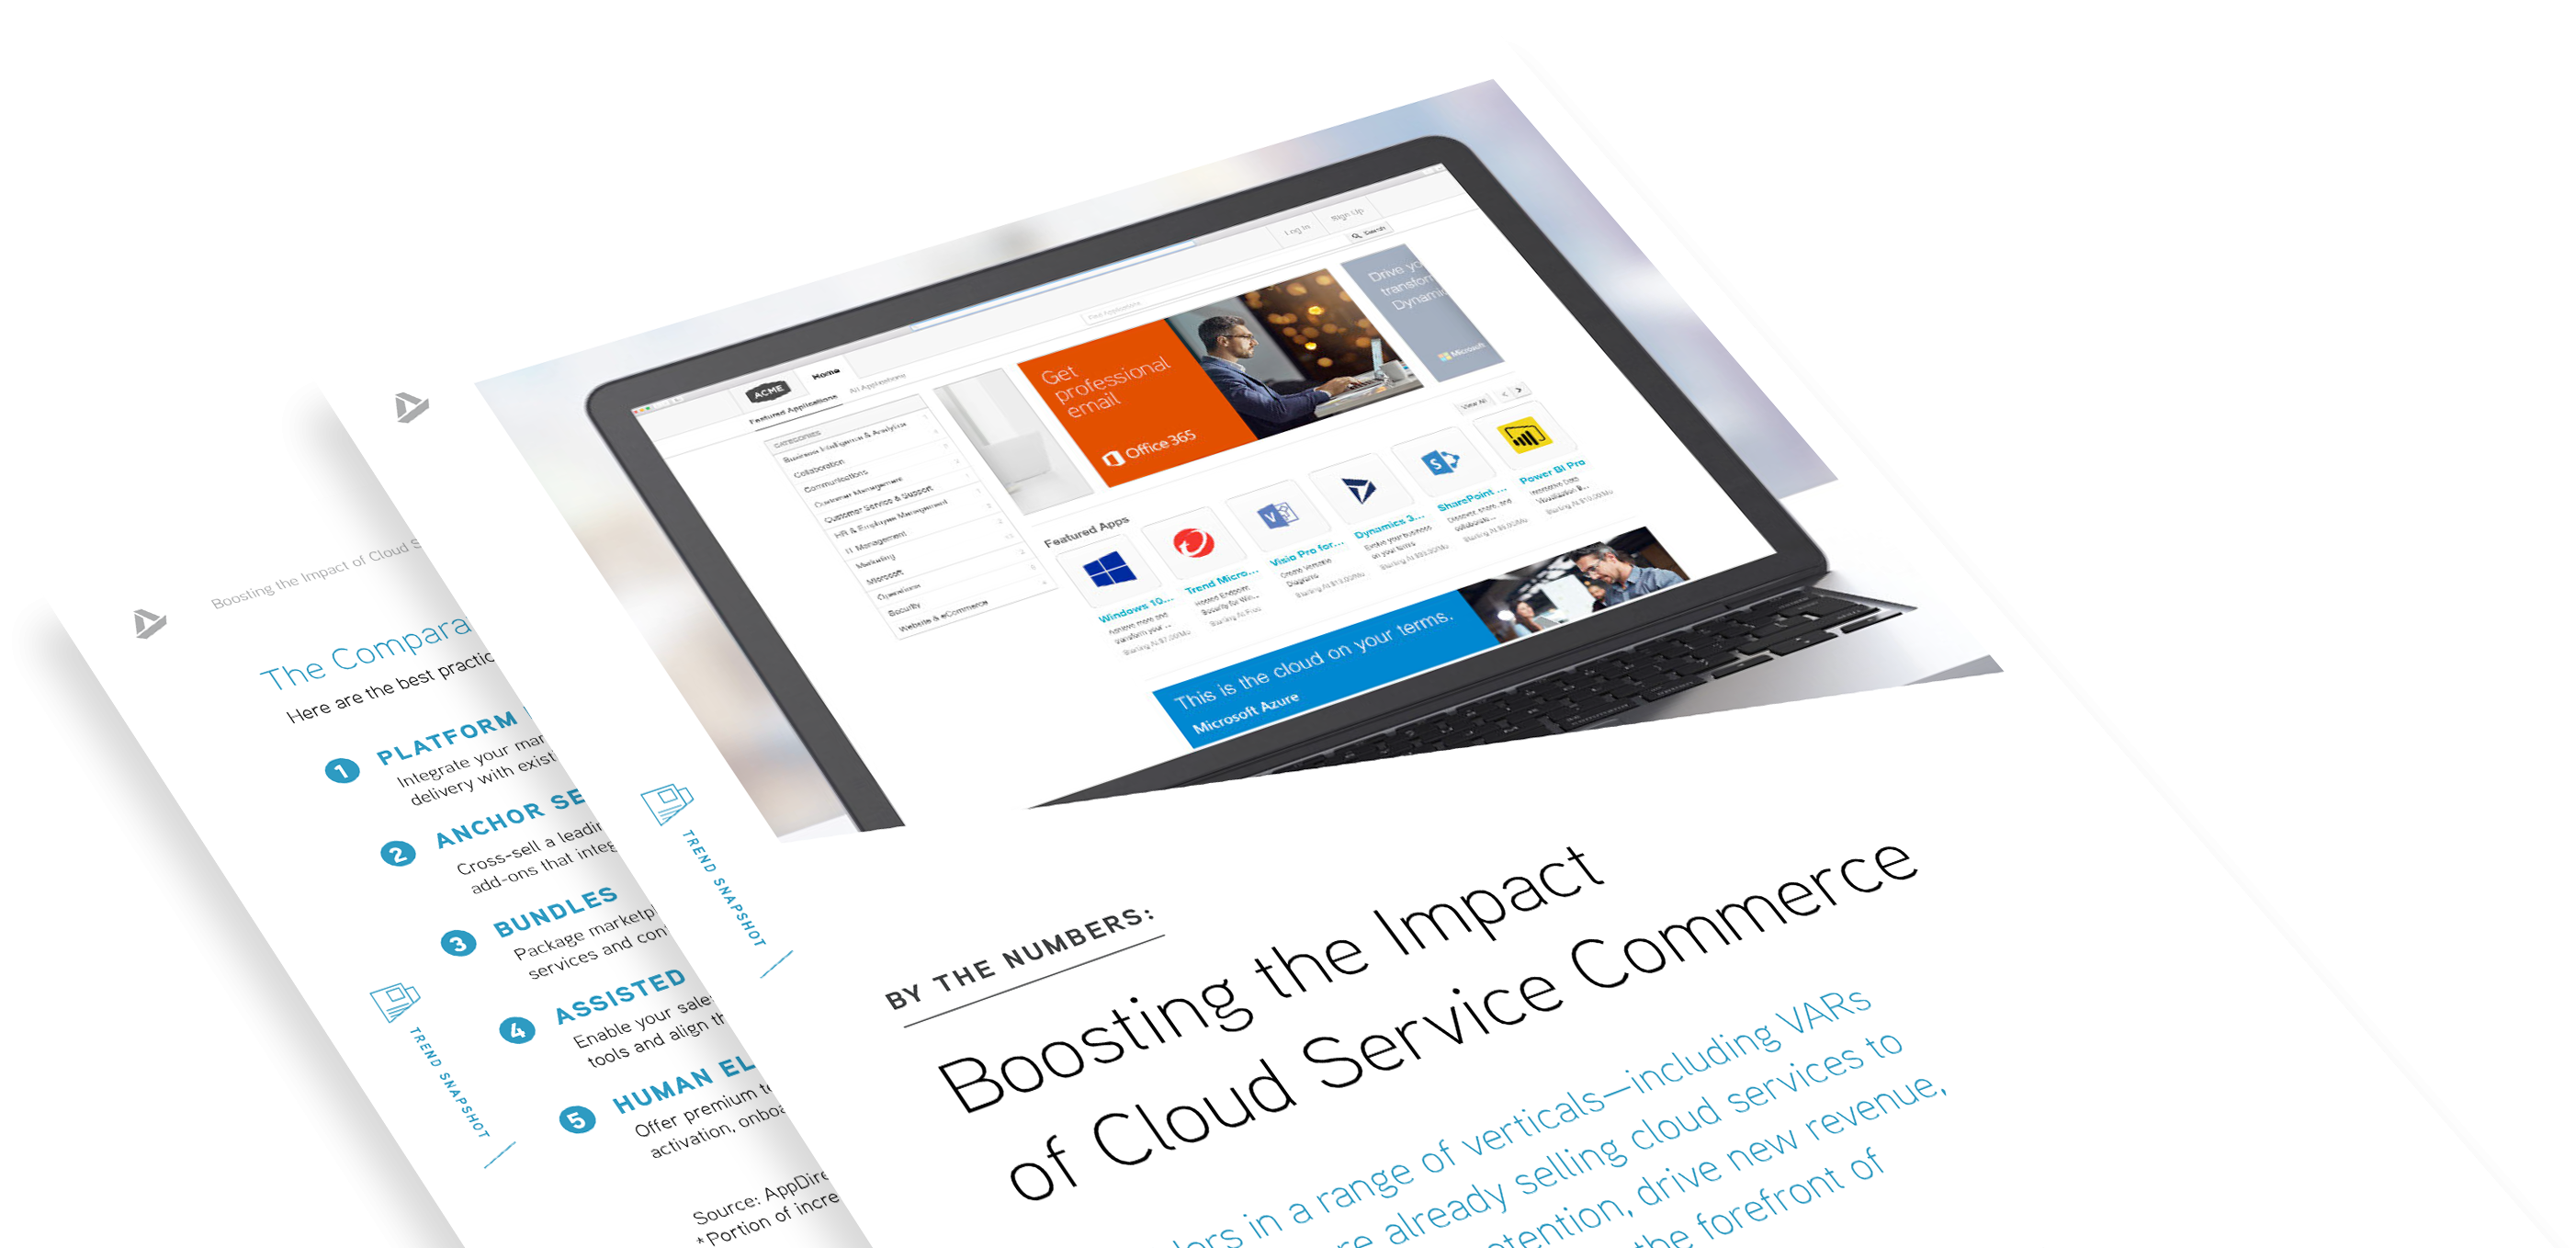 Trend Snapshot: Boosting the Impact of Cloud Service Commerce